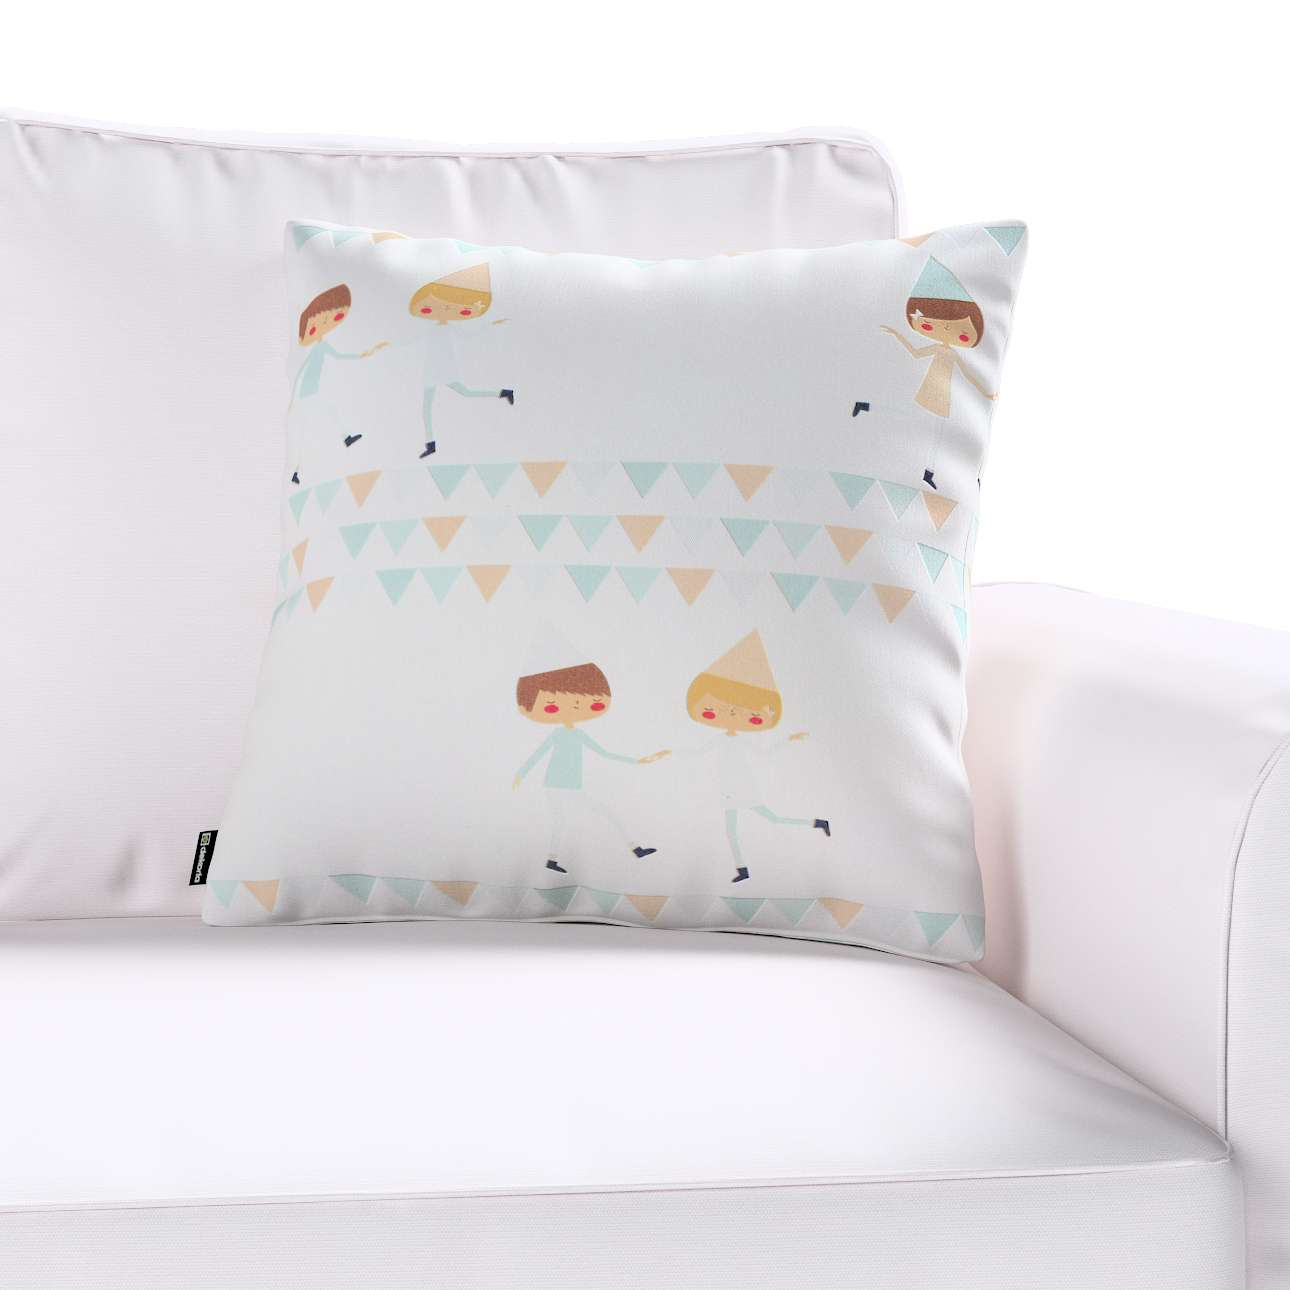 Kinga cushion cover 43 x 43 cm (17 x 17 inch) in collection Apanona, fabric: 151-01